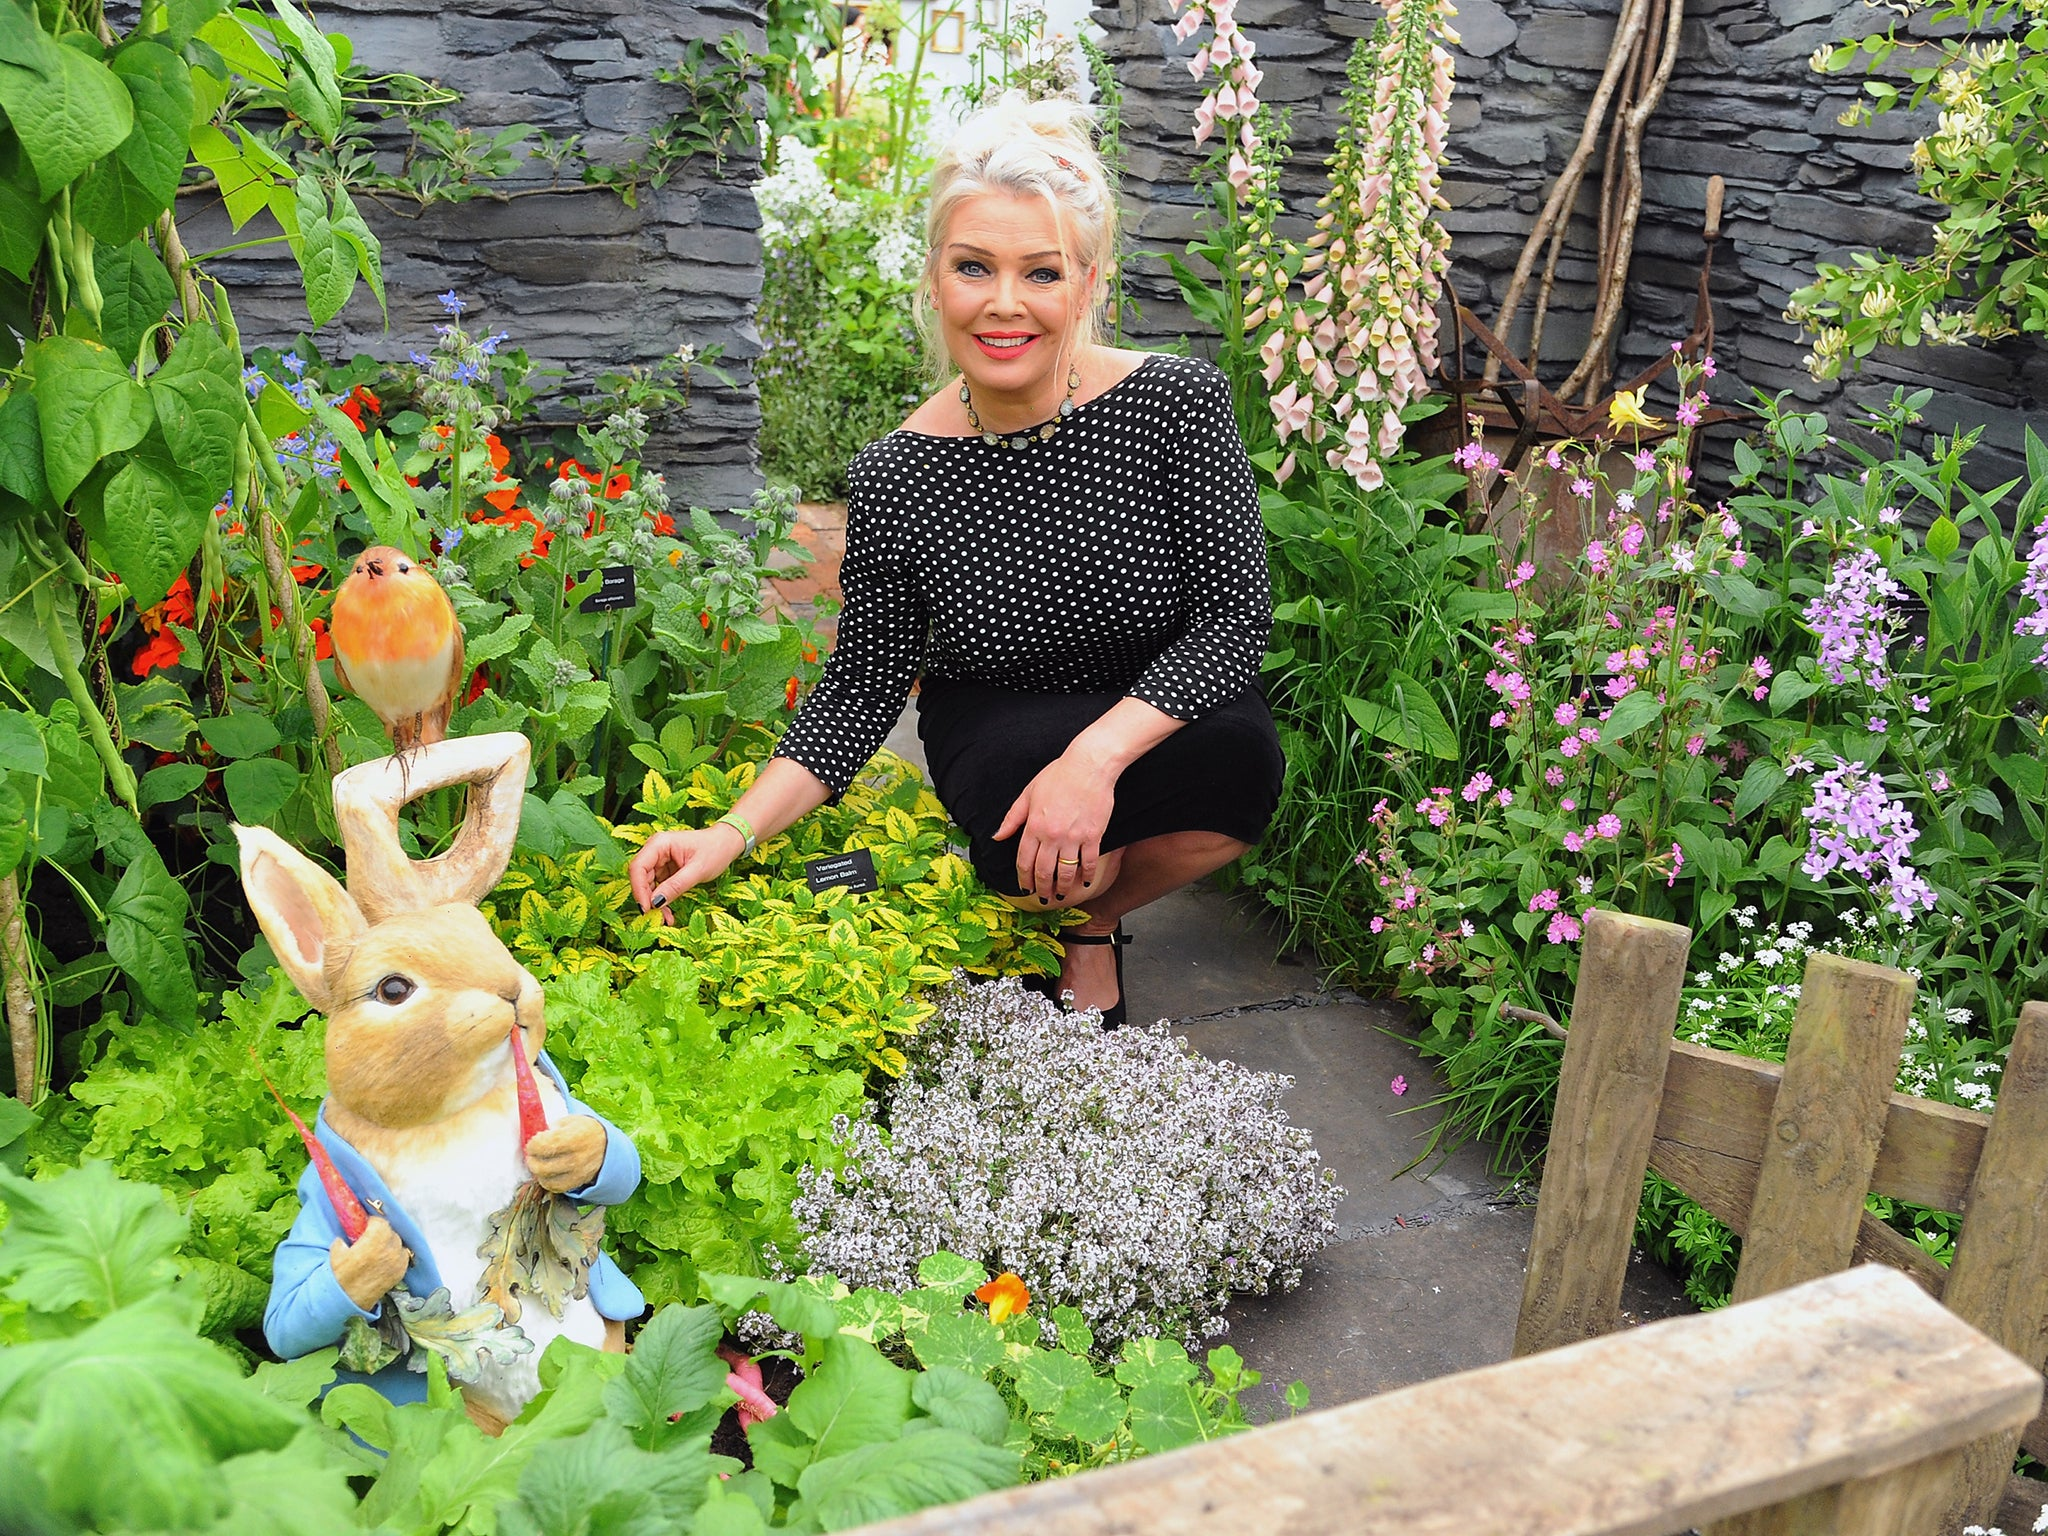 Kim Wilde 39 Horticulture Gave Me Back My Life Gardens Are Always The First Place I Go To